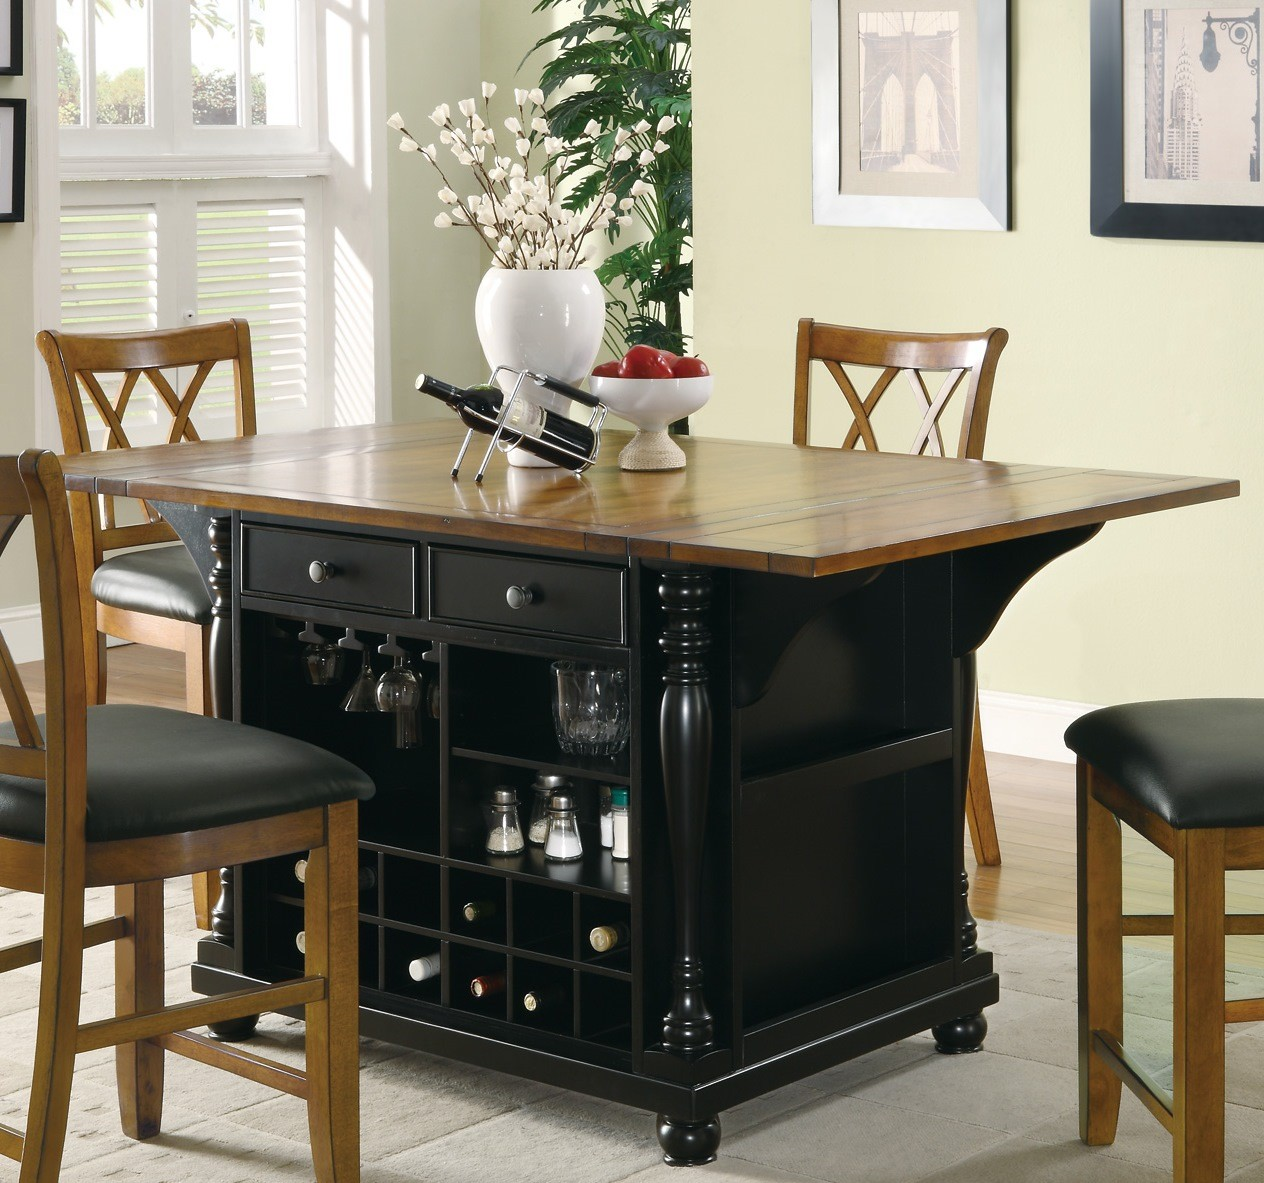 102270 Black Kitchen Island From Coaster 102270